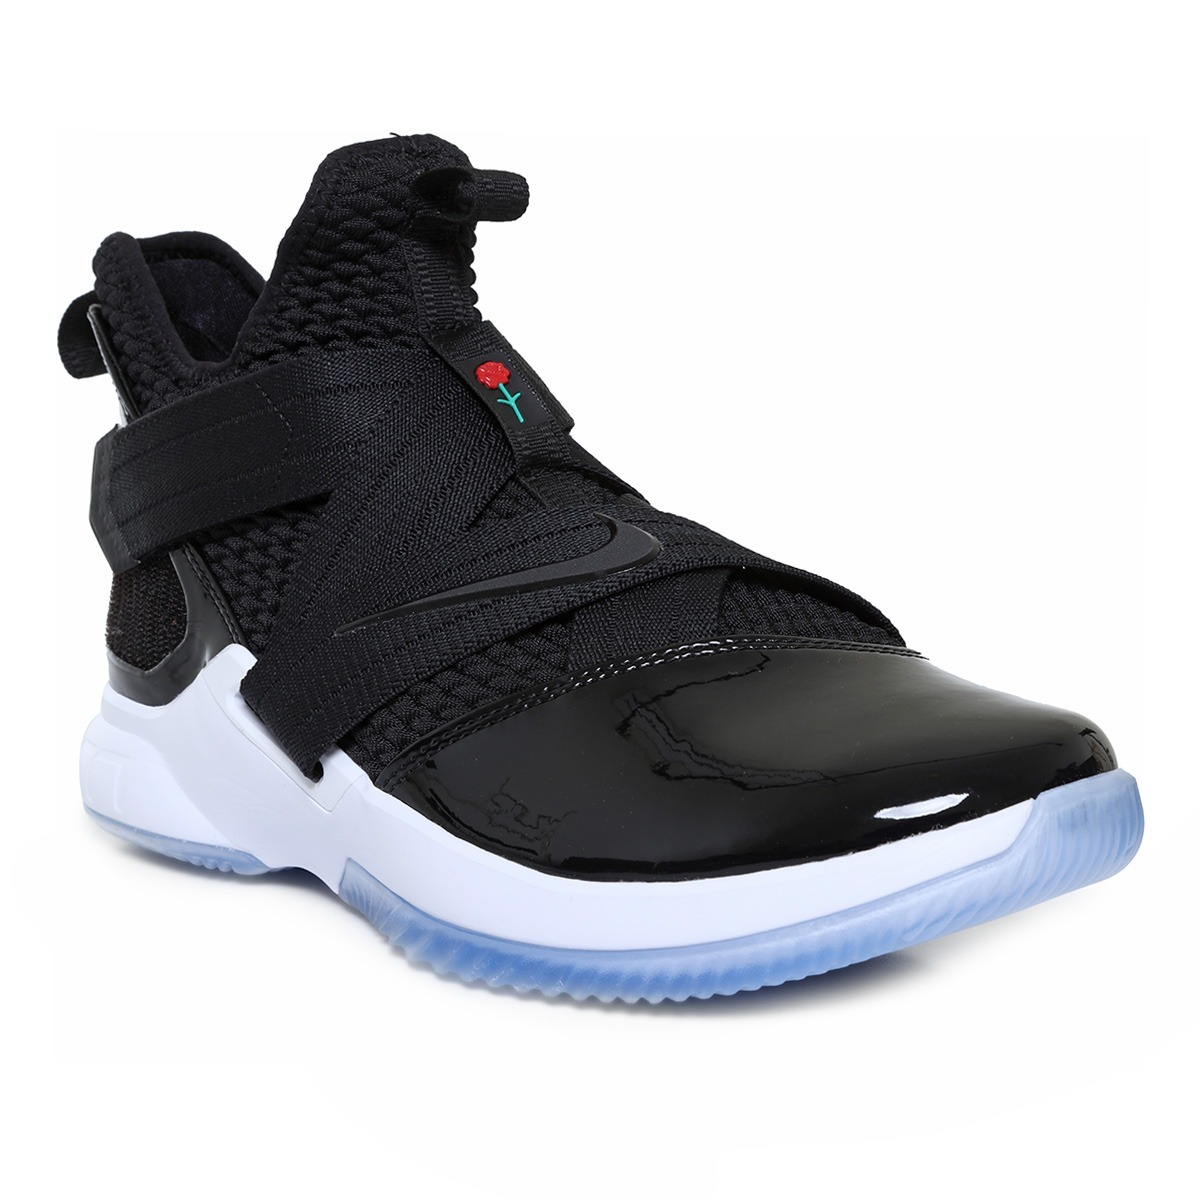 newest a9449 04526 Tenis Nike Lebron Soldier Xii Negro Rose Basketball Original